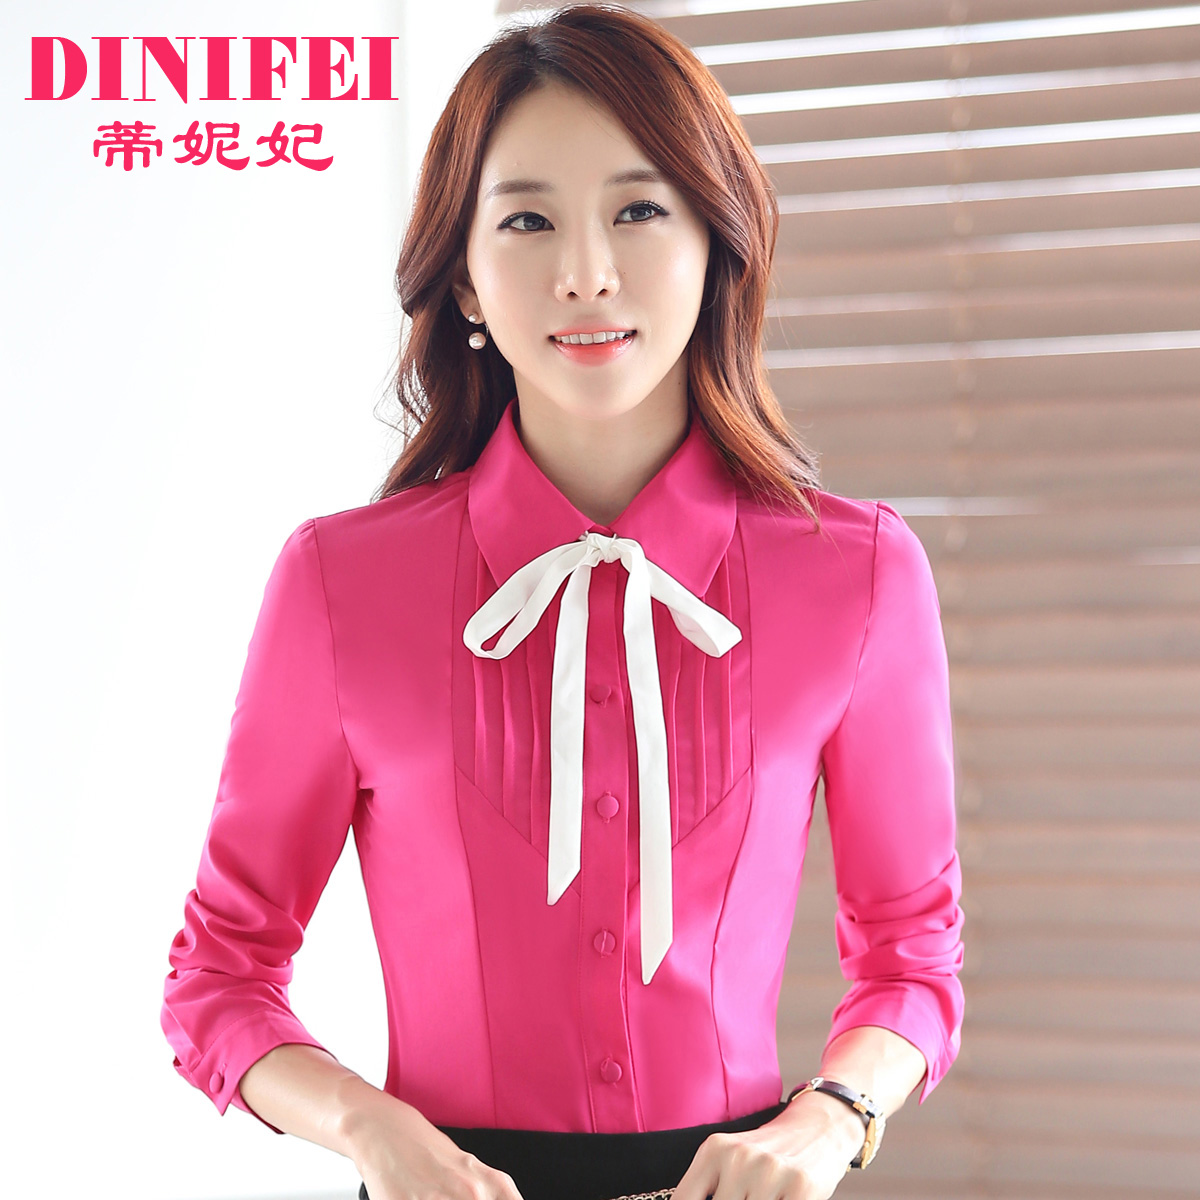 Dini dini fei fei new autumn and winter wear women's ol ladies long sleeve shirt bow shirt slim